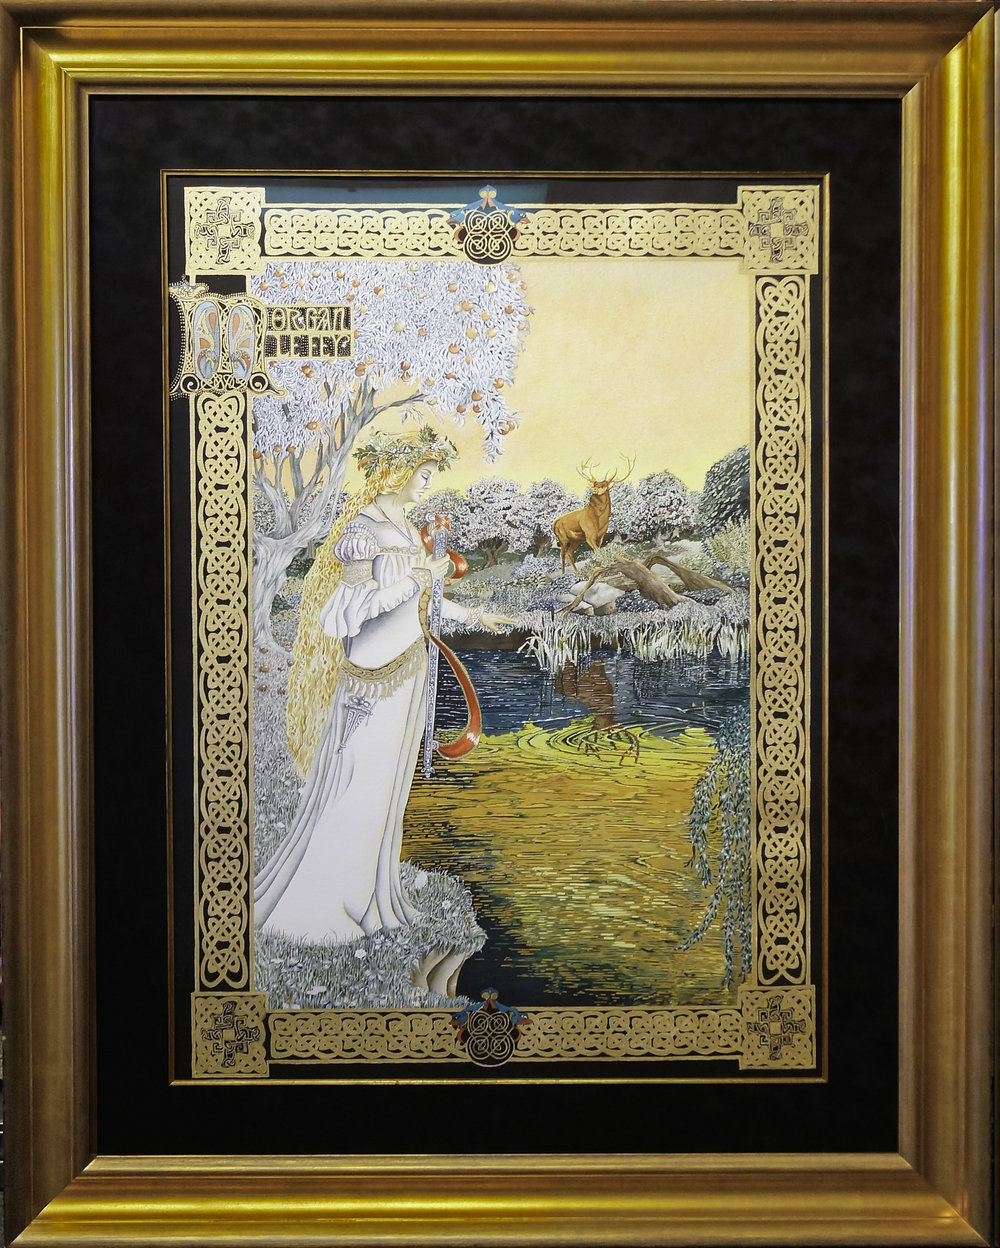 Grand Watercolor Painting with a classic gold leaf frame